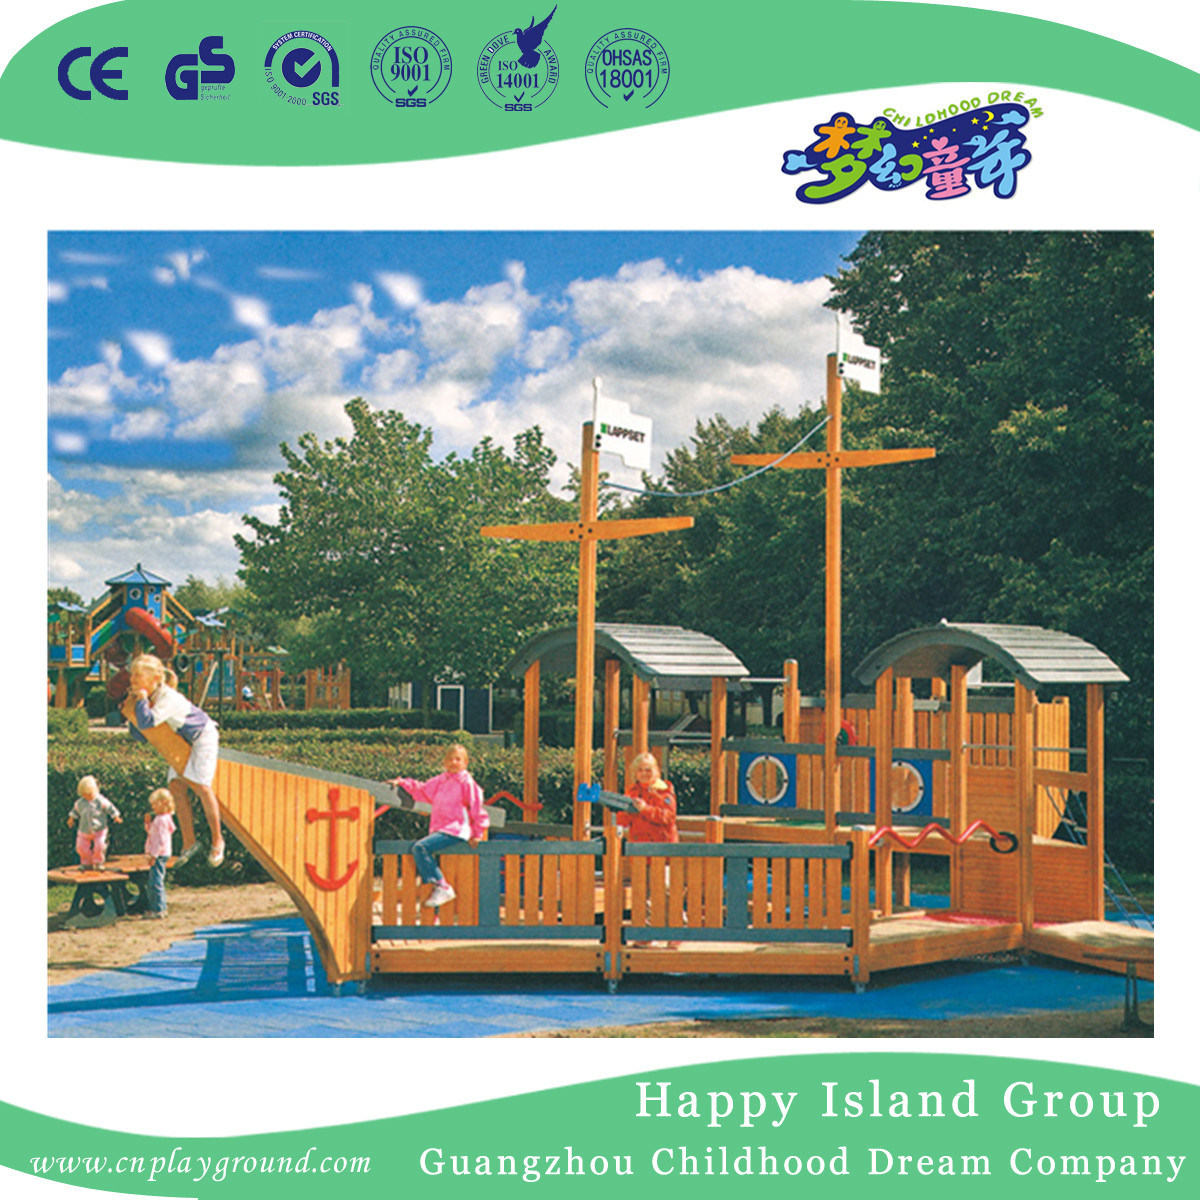 Hot Item Eco Friendly Outdoor Wooden Pirate Ship Playground Equipment Hj 16902